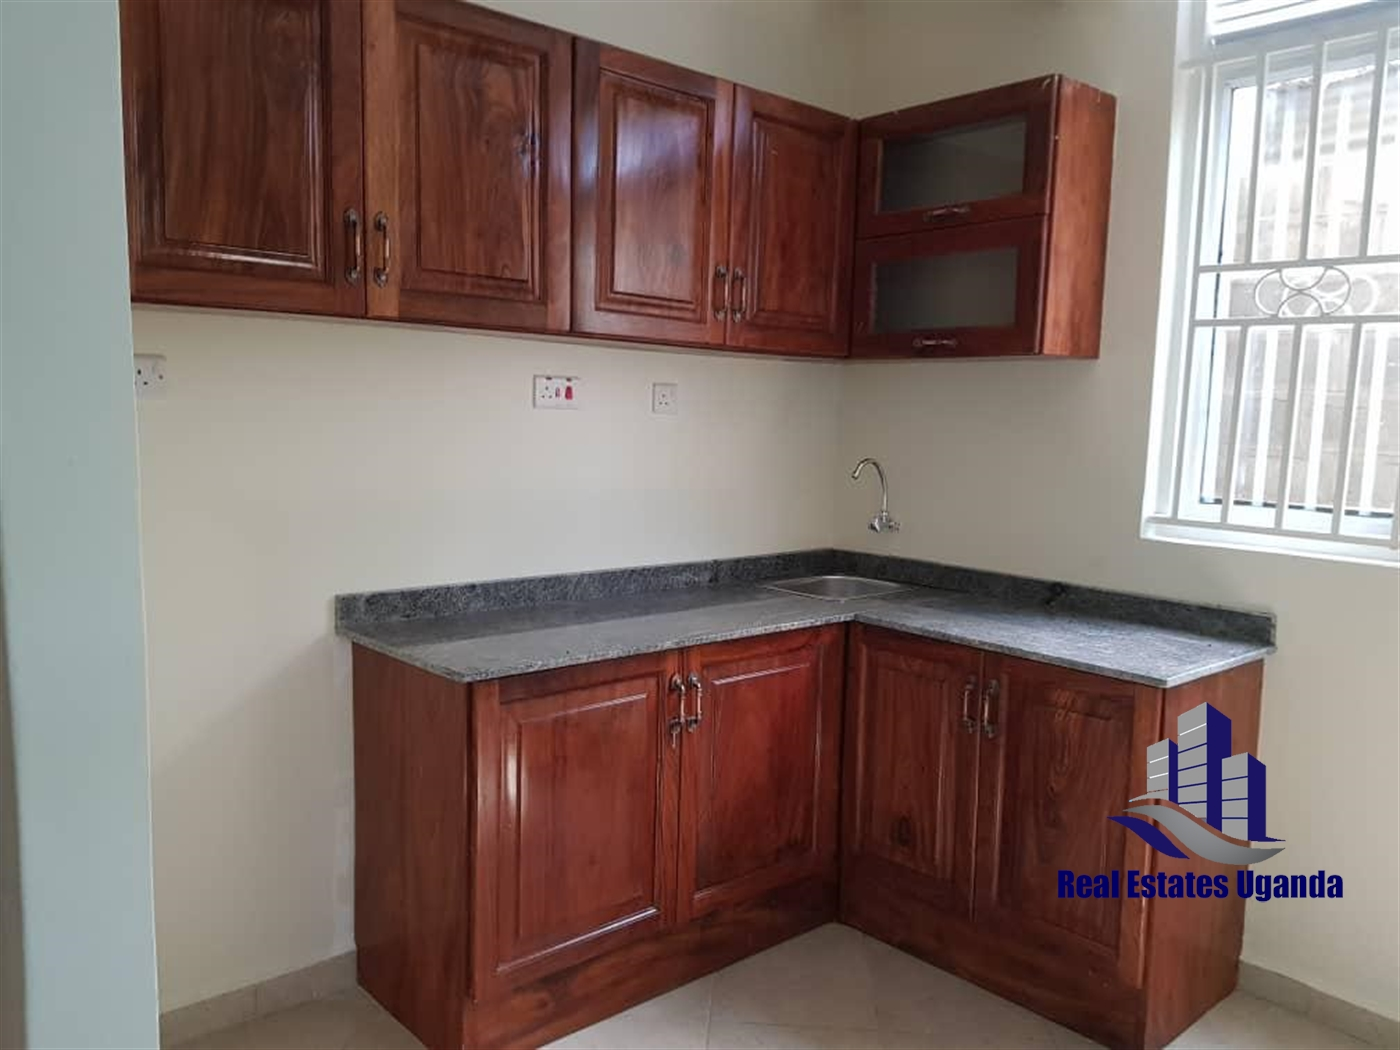 Apartment for sale in Kansanga Kampala